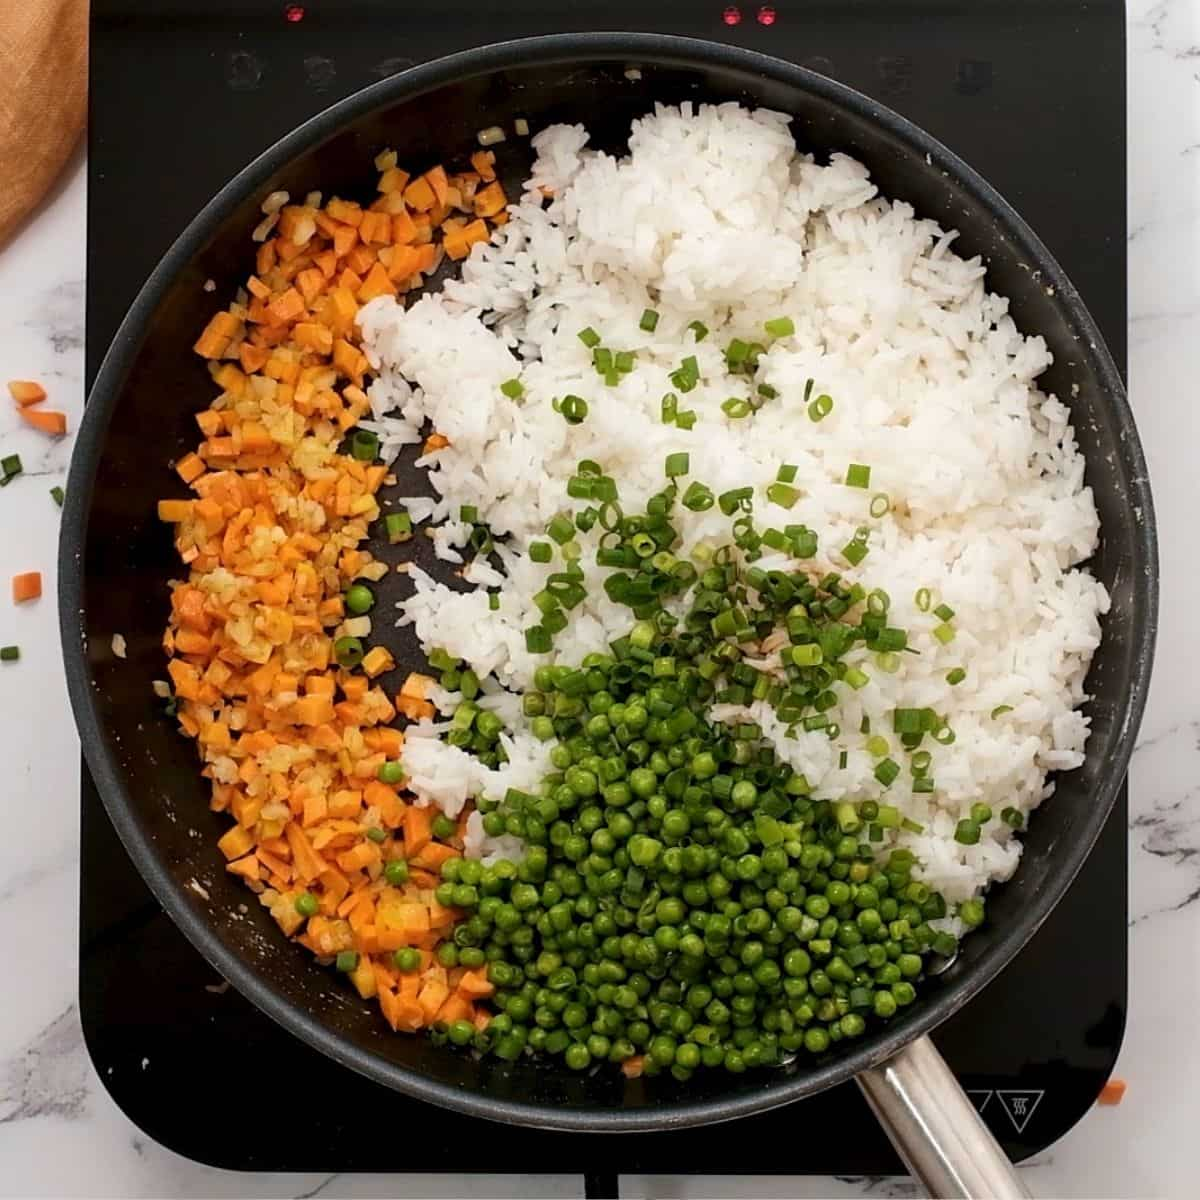 Skillet with rice, peas,and carrots.